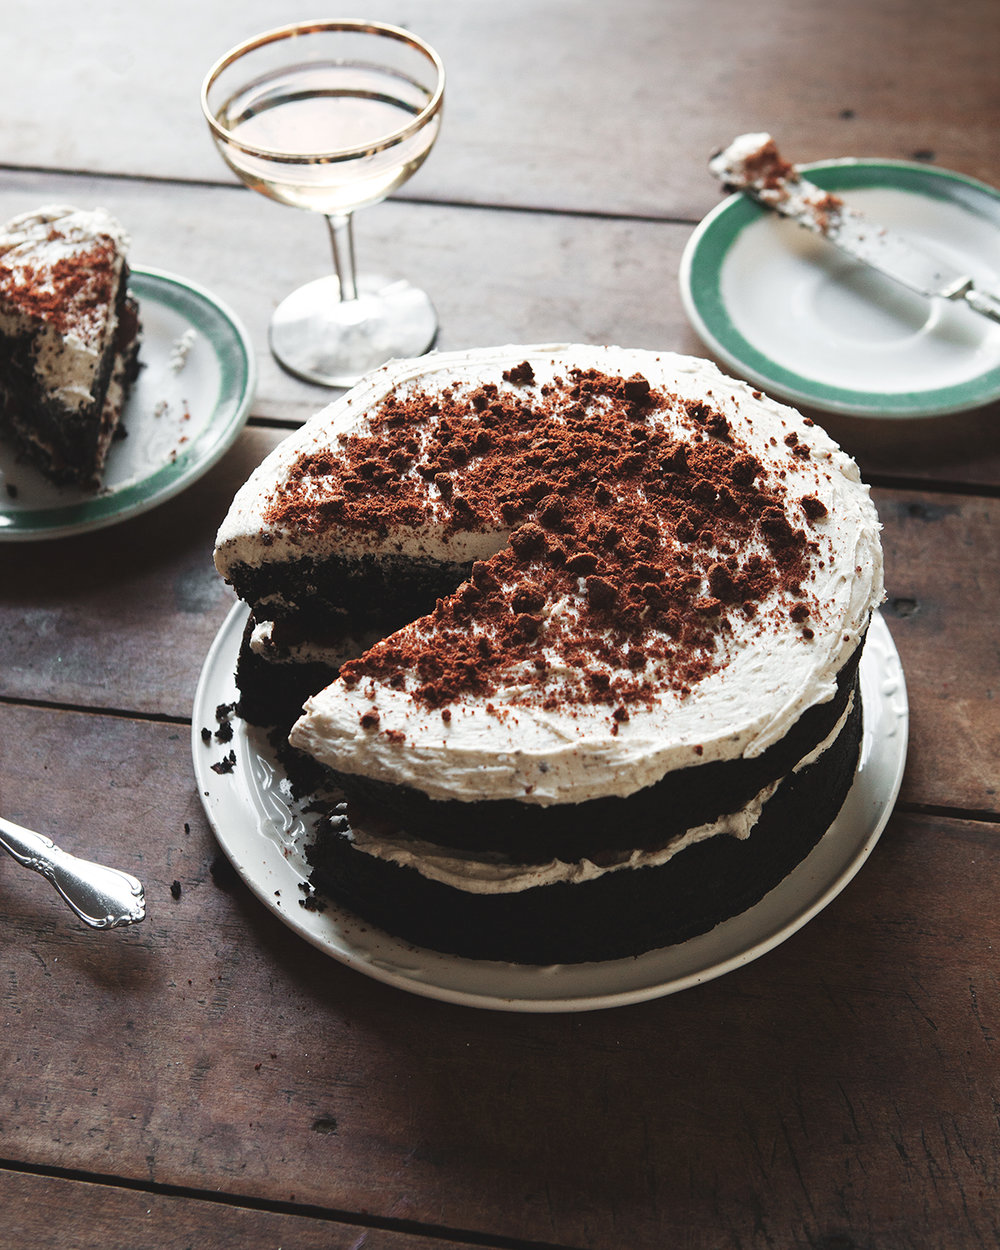 Chocolate Birthday Cake with Espresso Bourbon Frosting + Cookie Crumbles